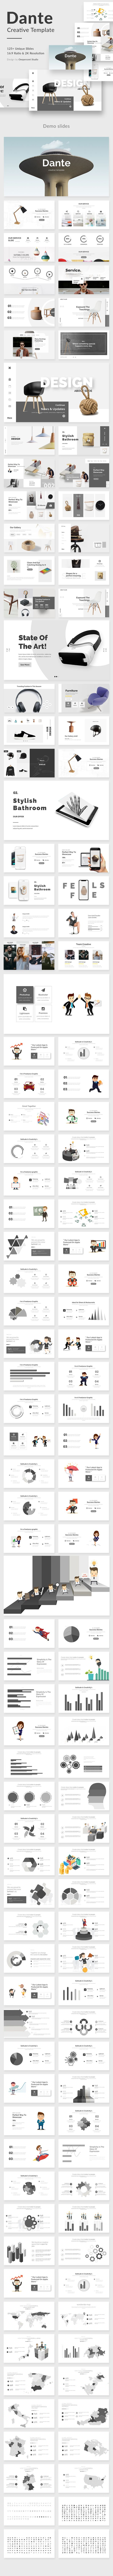 Dante Creative Google Slide Template  Creative Powerpoint